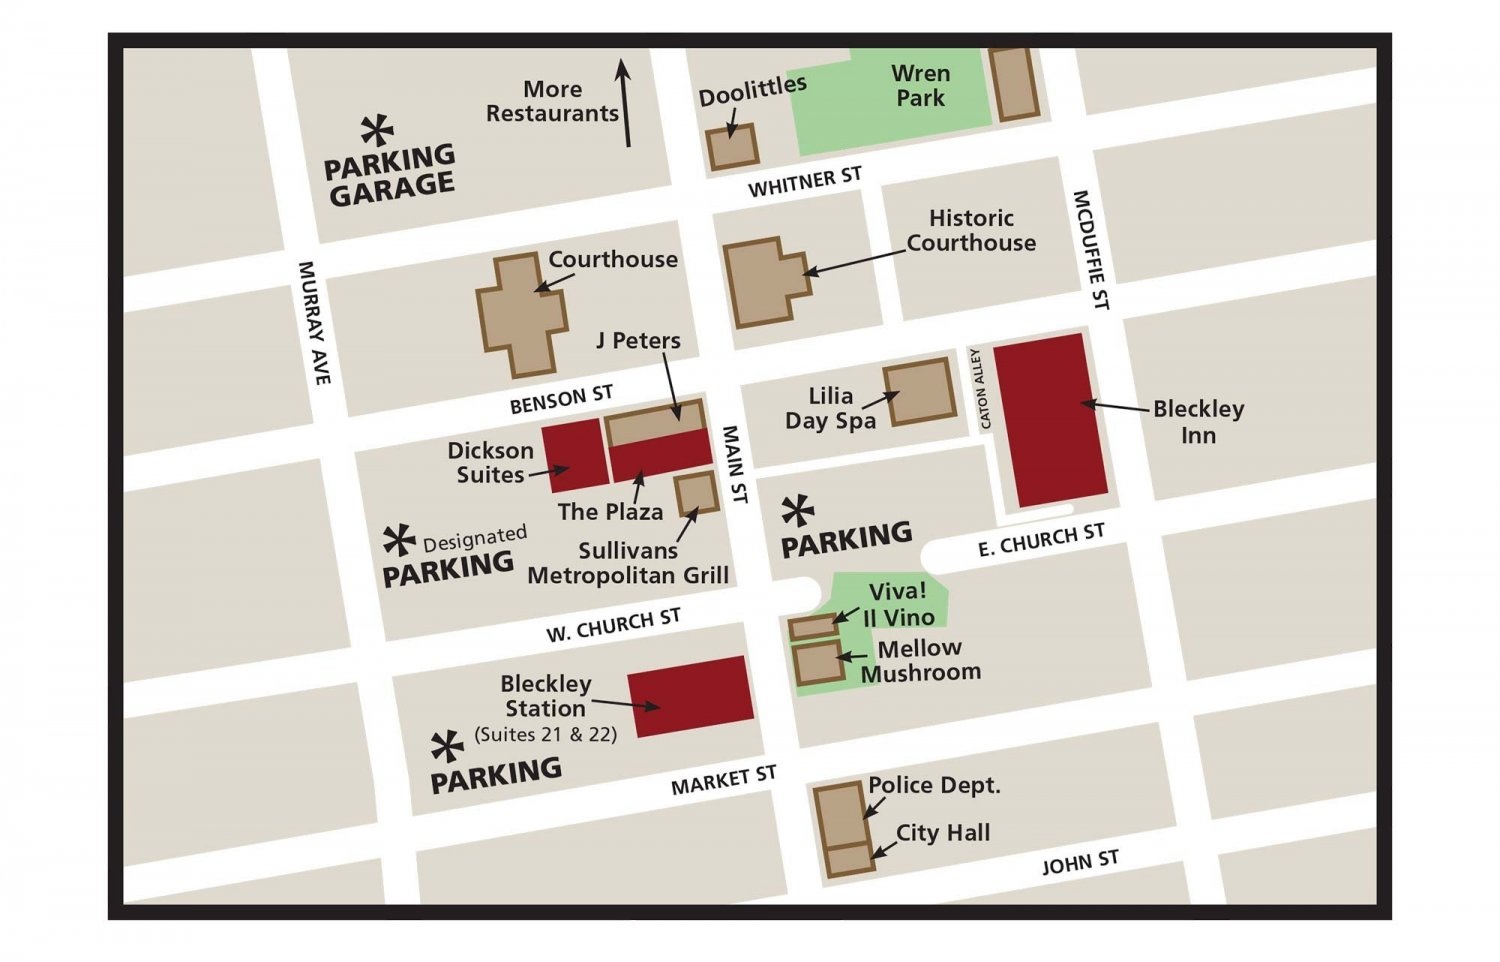 Map of Bleckley Inn Building Locations